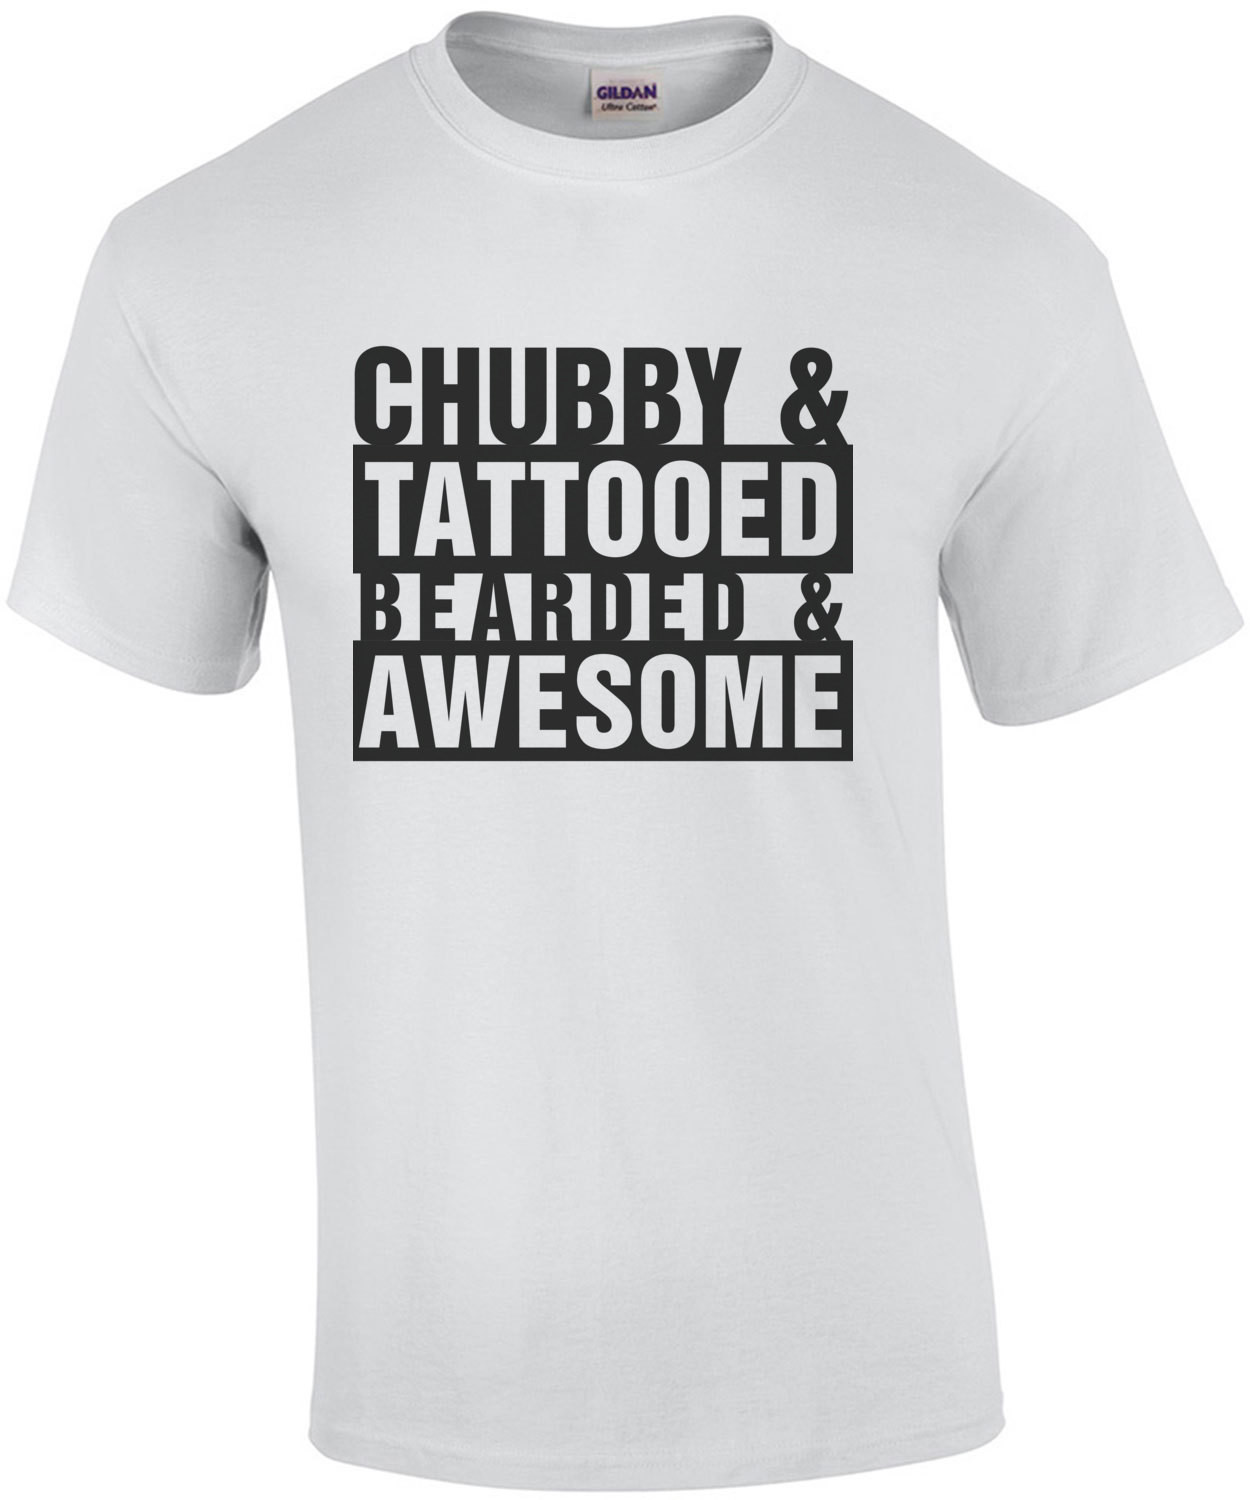 Chubby & Tattooed & Bearded & Awesome - Funny T-Shirt